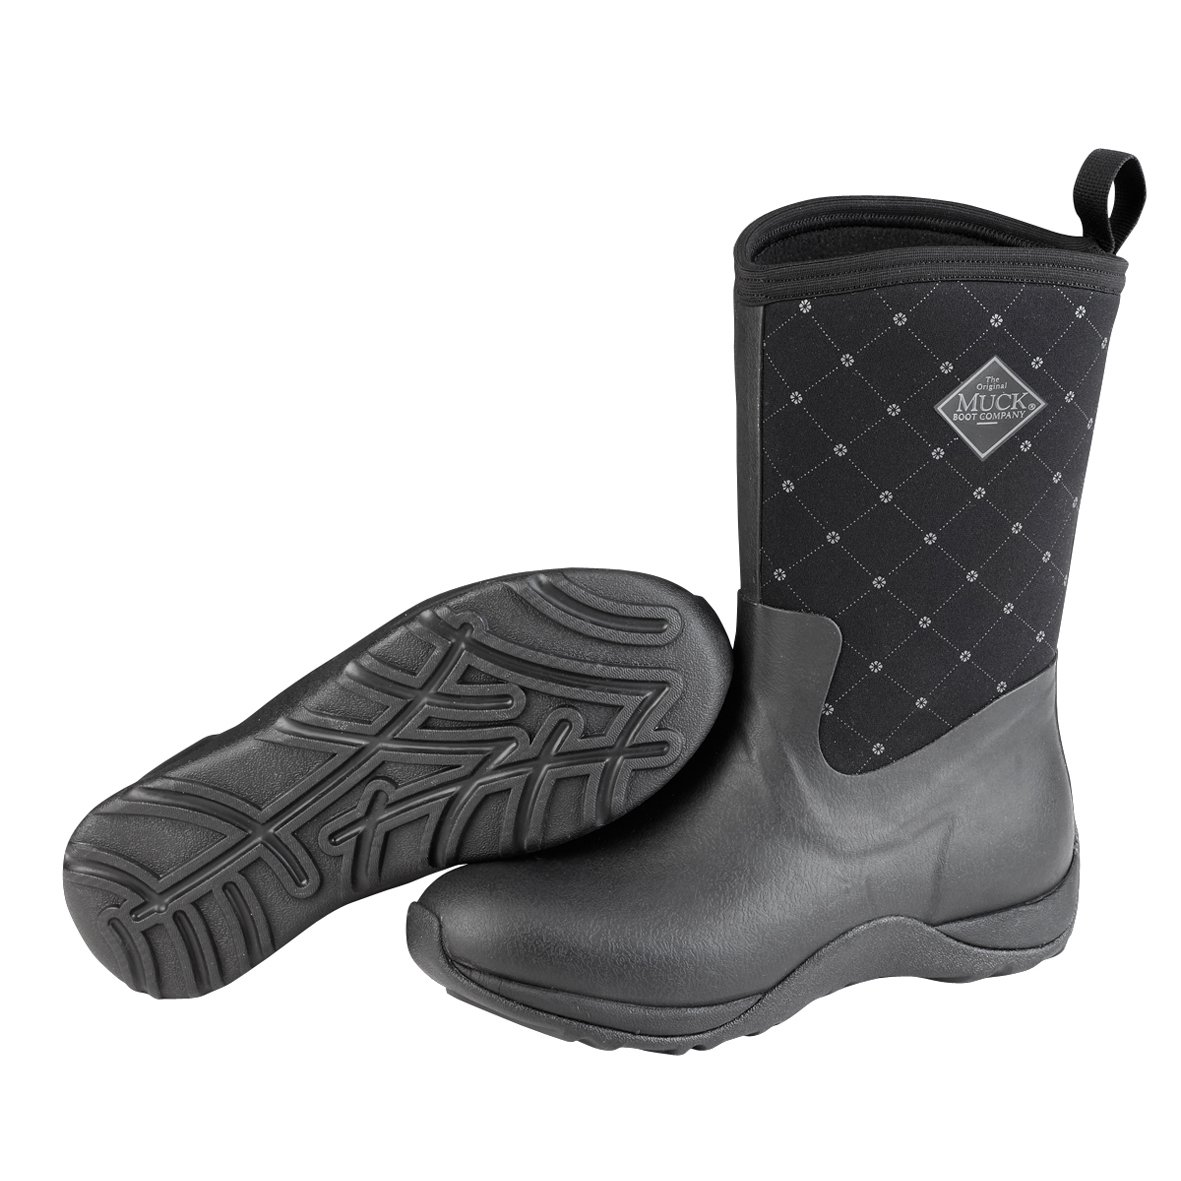 Muck Arctic Weekend Mid-Height Rubber Women's Winter Boots - Black Quilt - 9 by Muck Boot